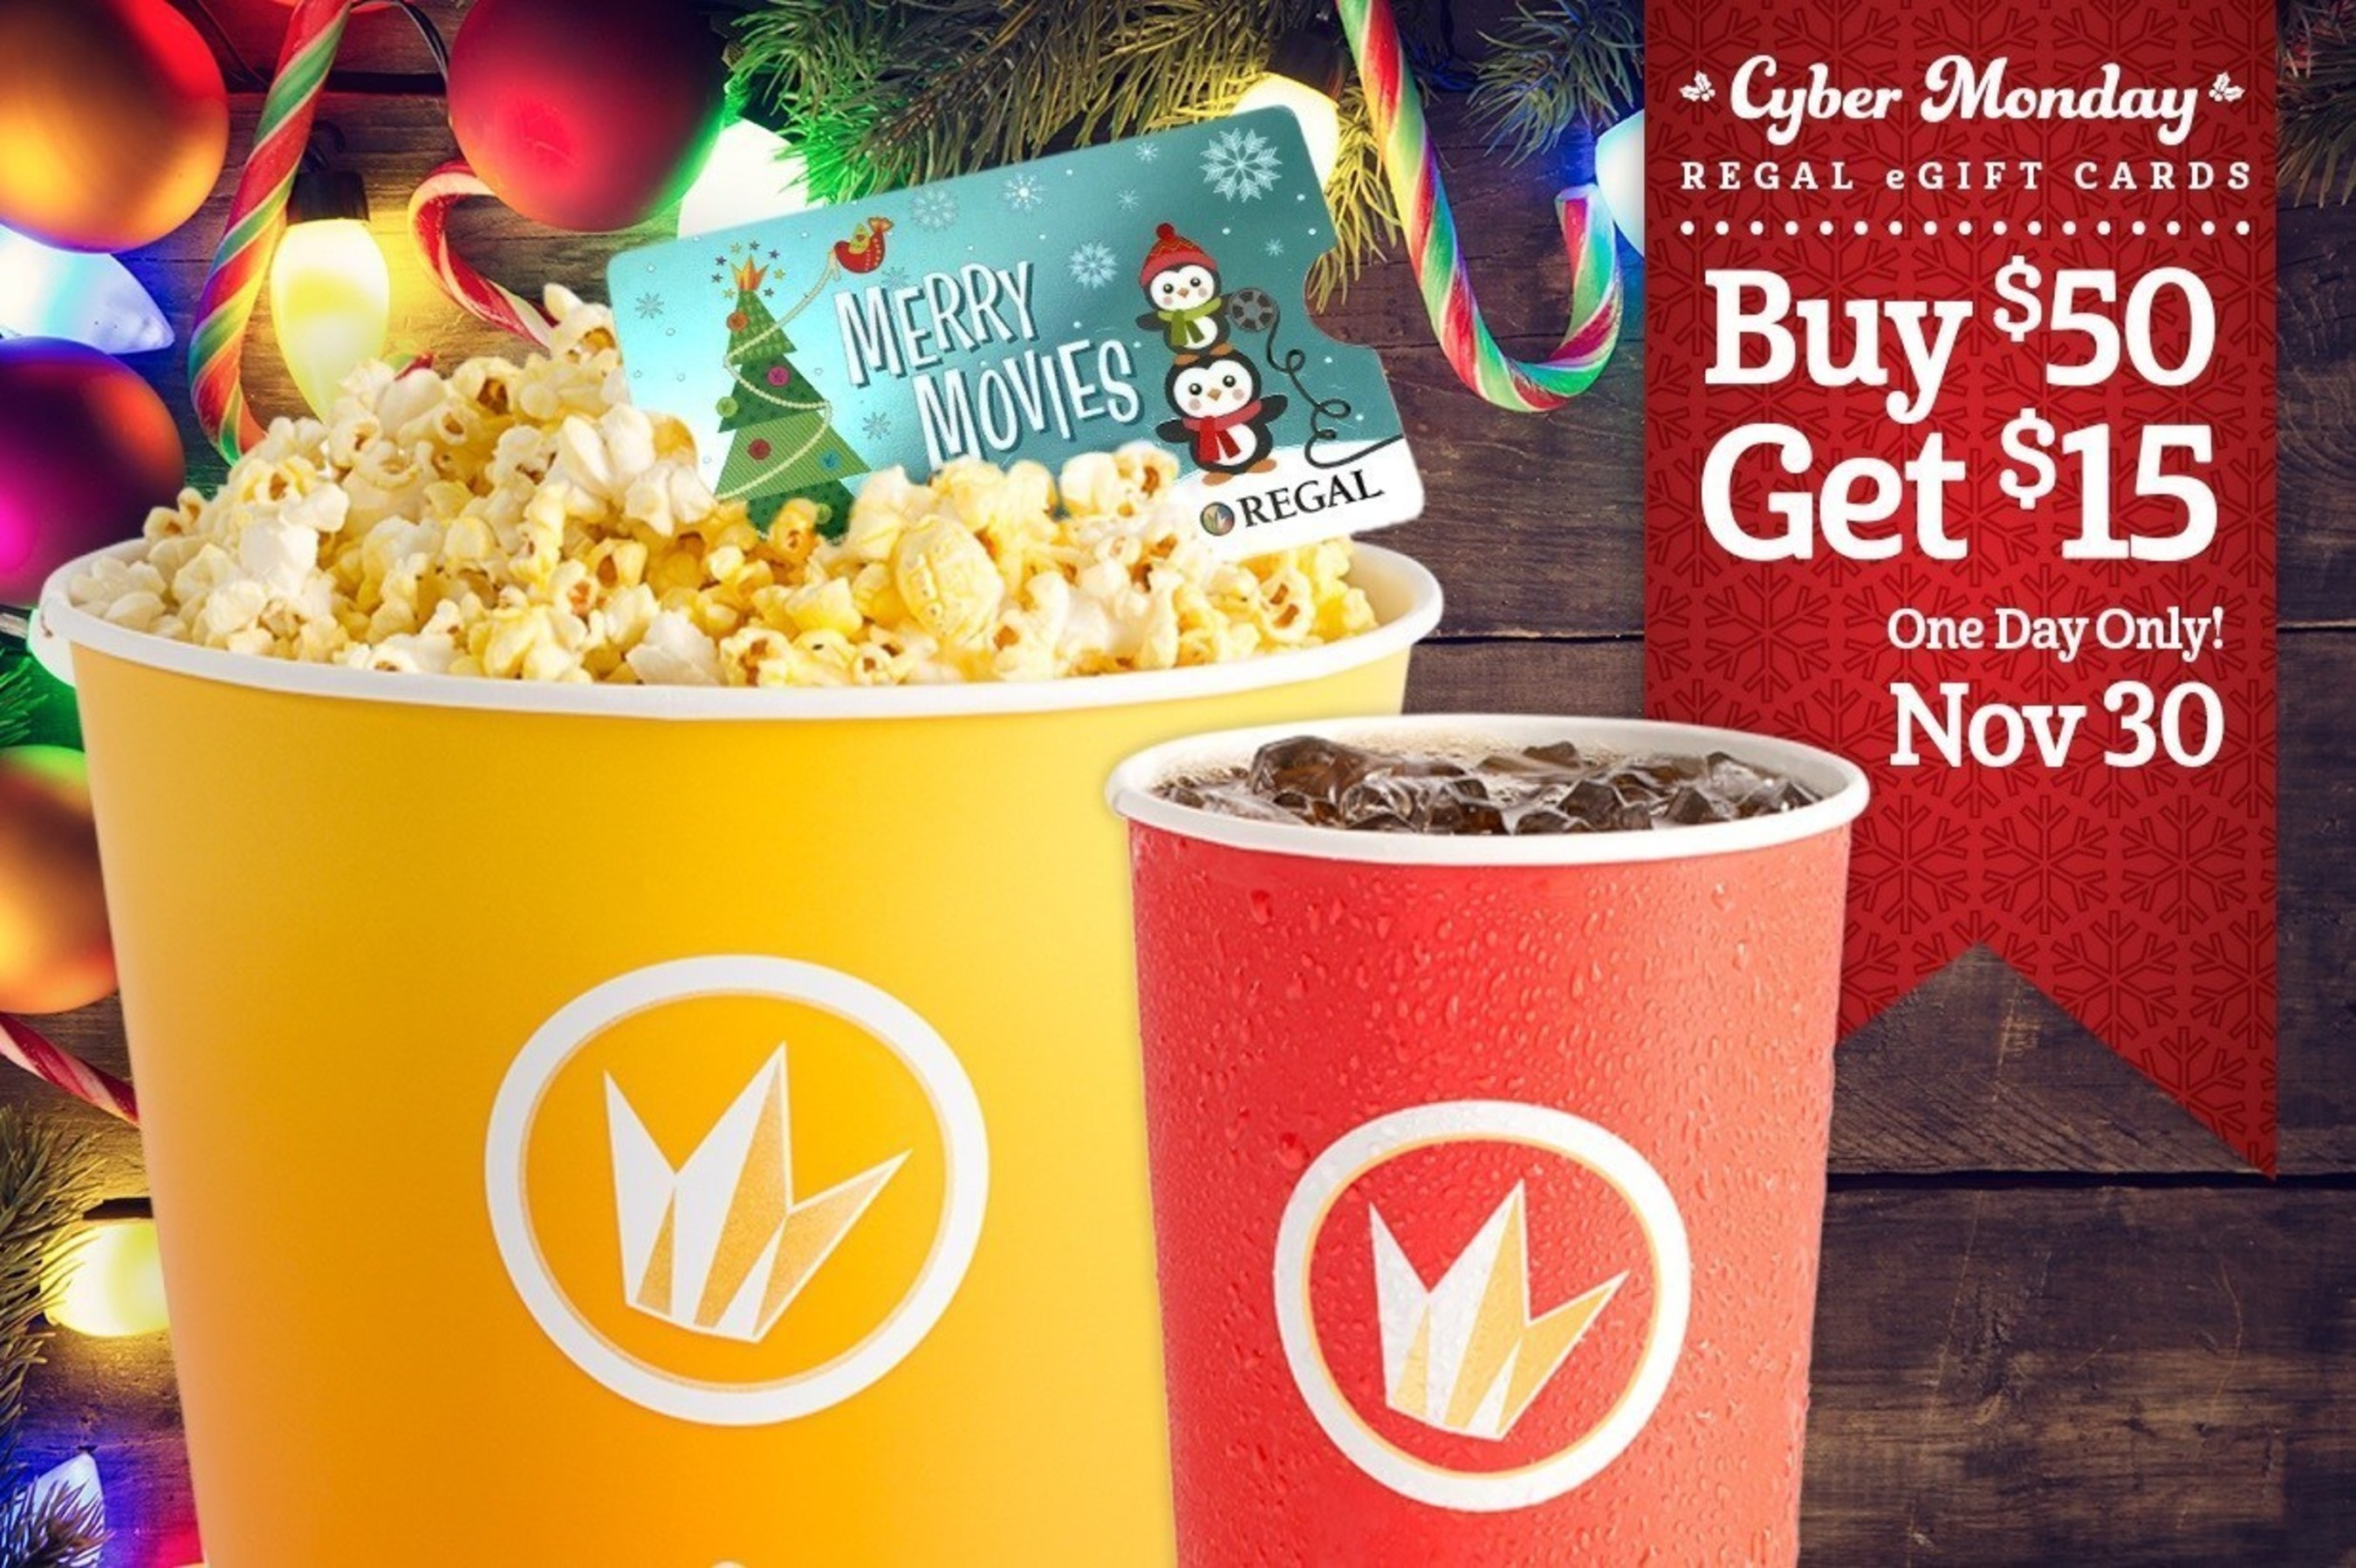 regal entertainment group announces cyber monday egift card offer buy 50 in egift cards and